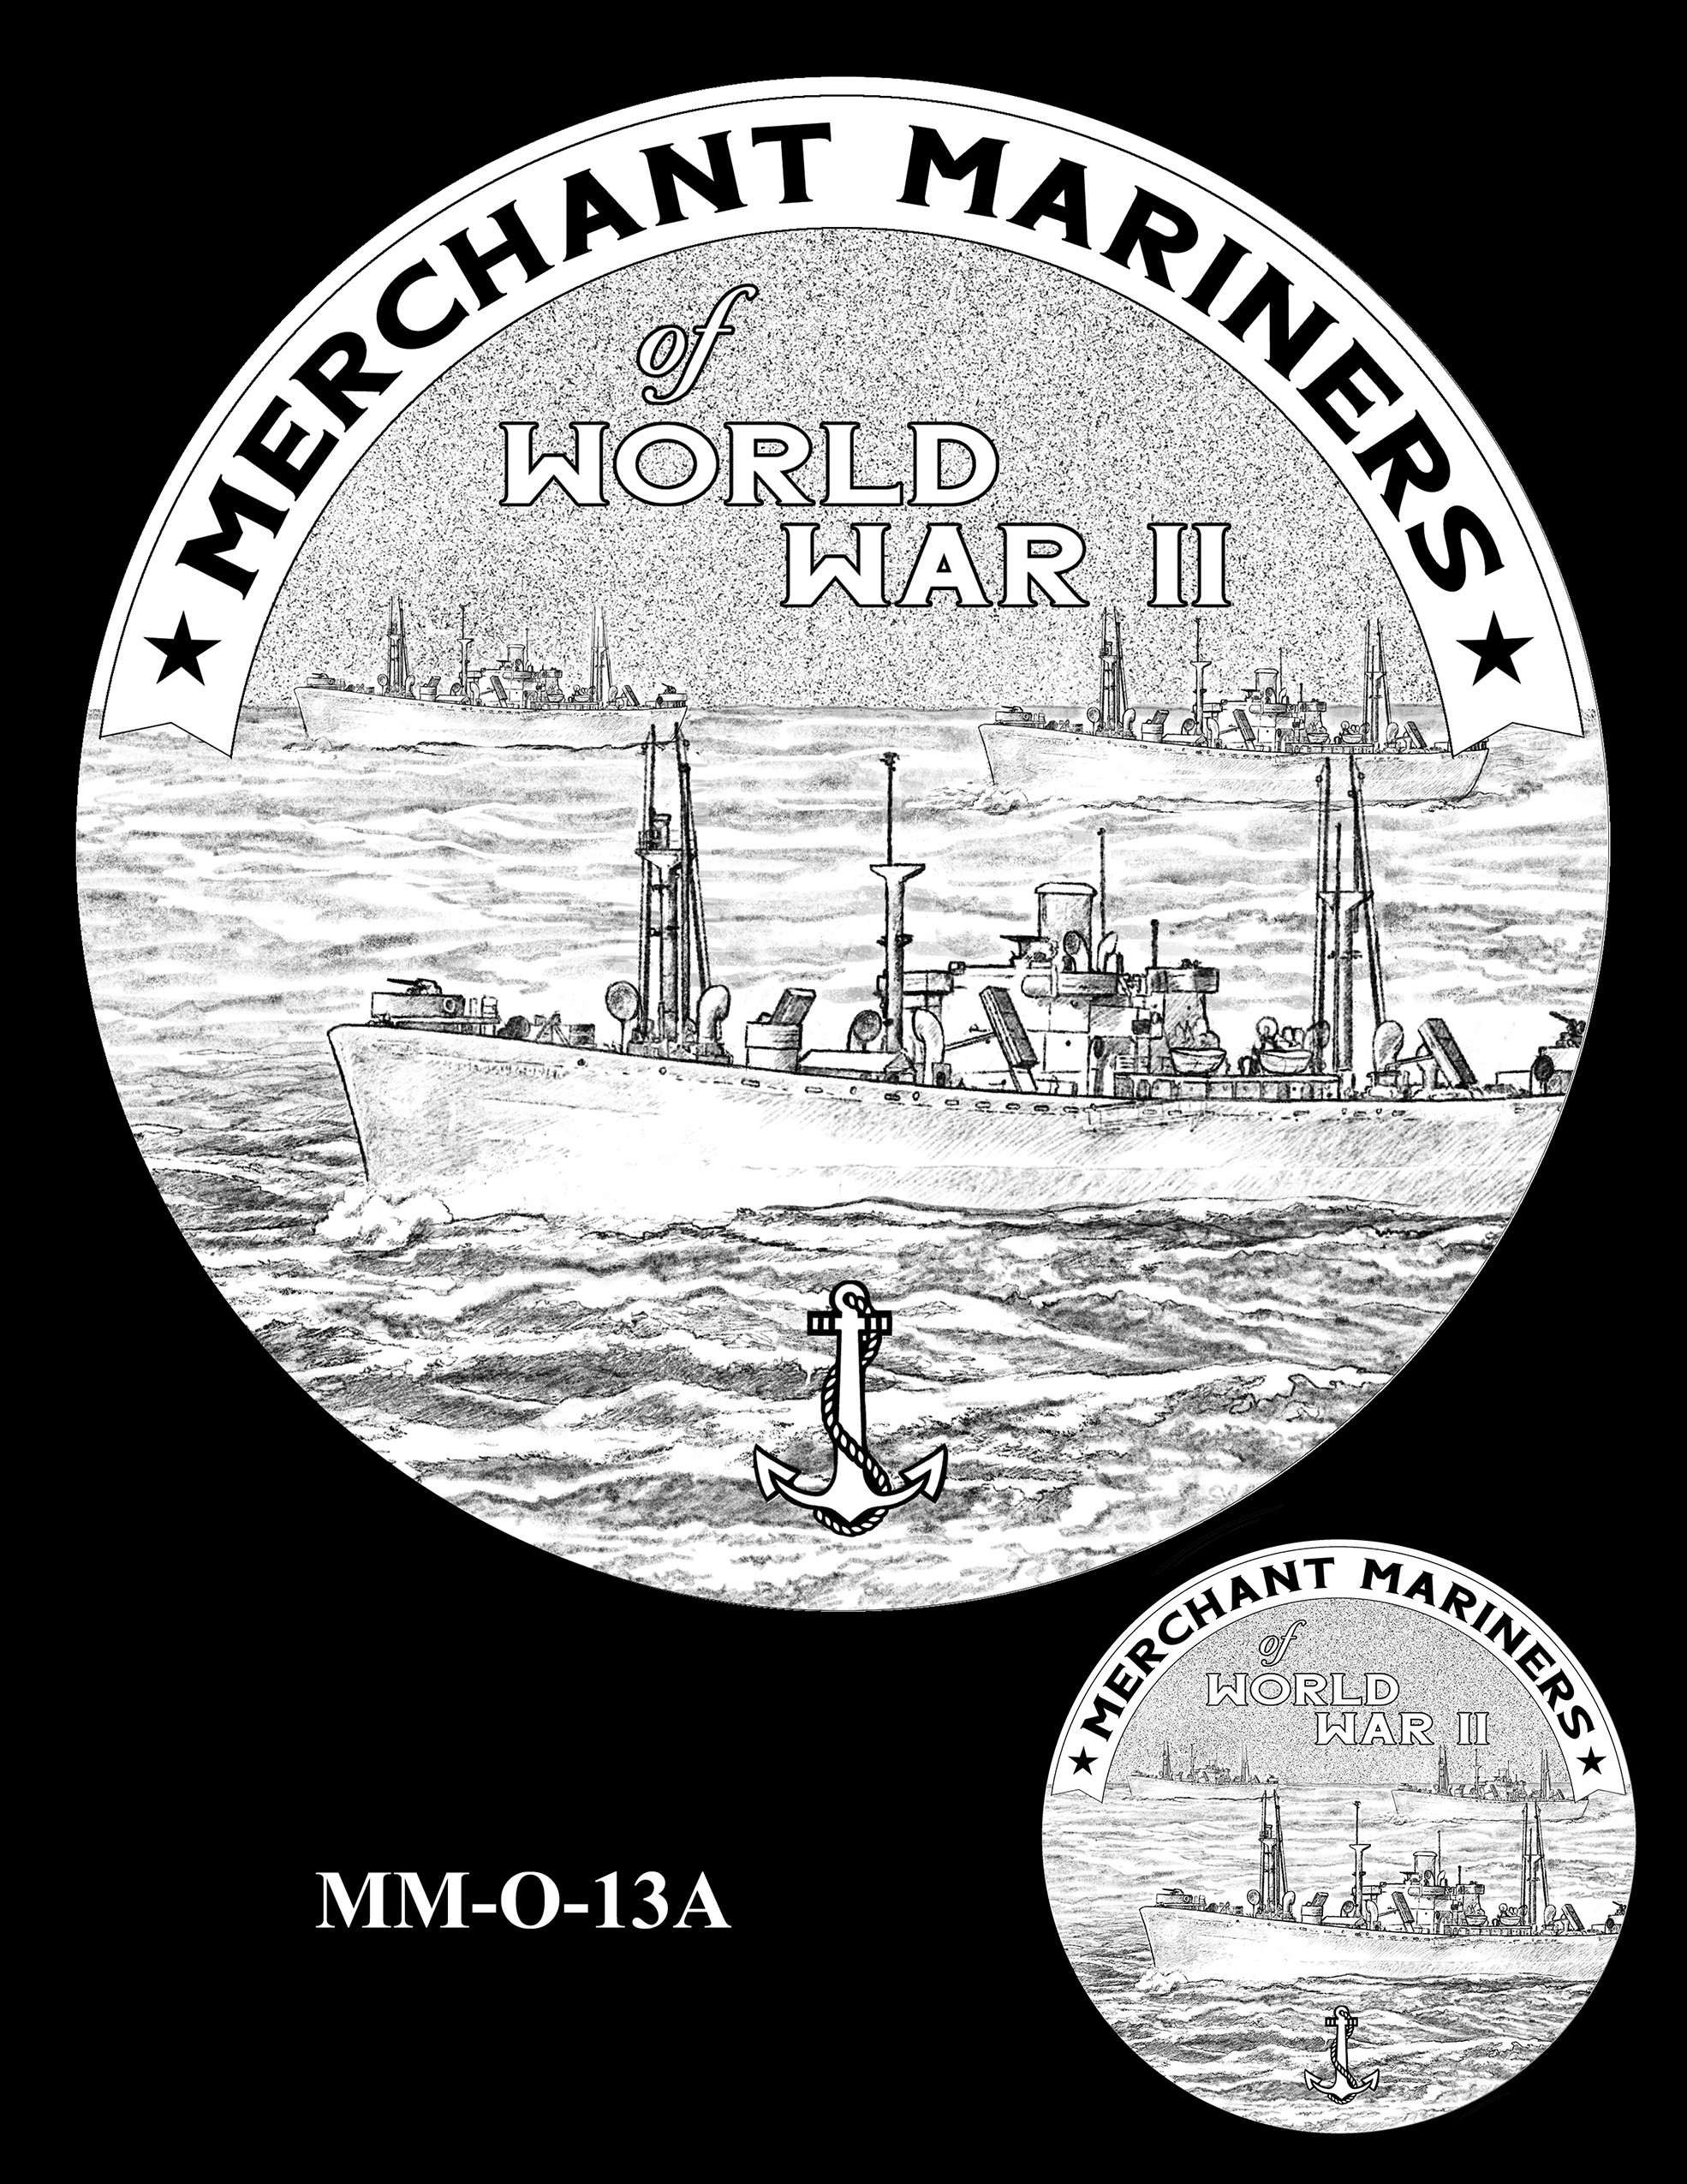 MM-O-13A -- Merchant Mariners of World War II Congressional Gold Medal